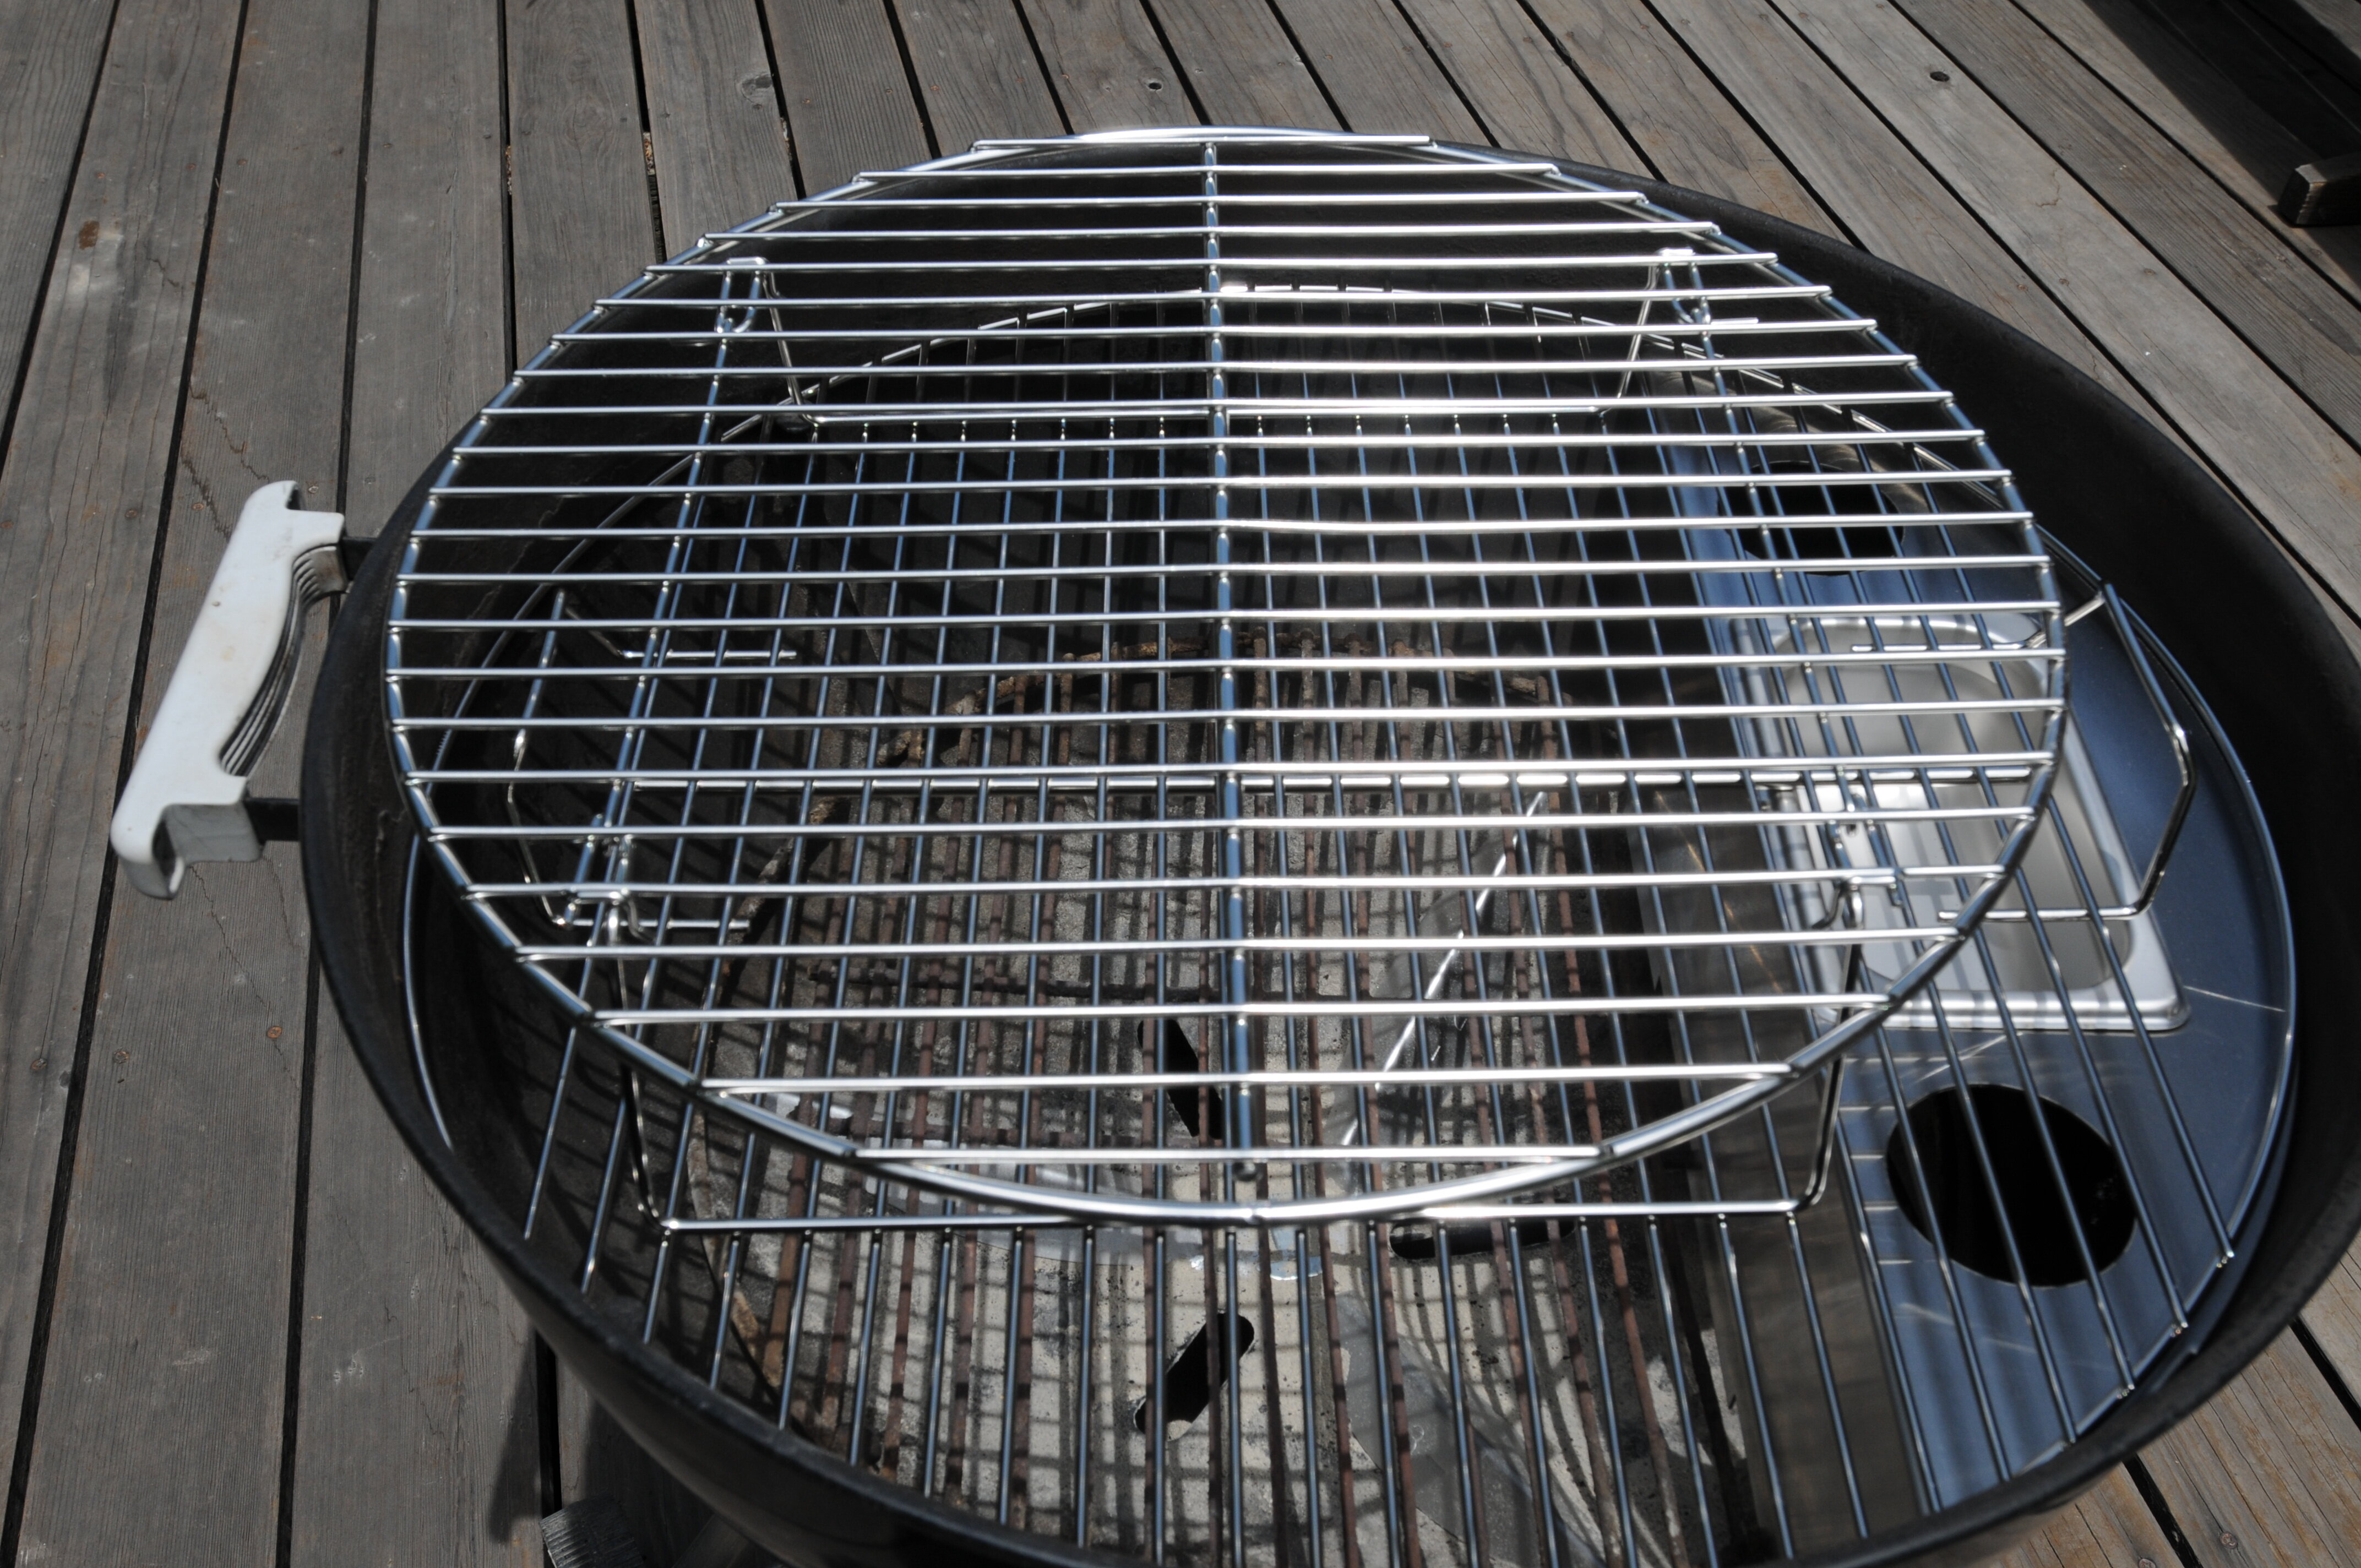 itm use grilling weber grill bbq warming stainless charcoal inch rack with grate for smoking kettle accessory expansion steel